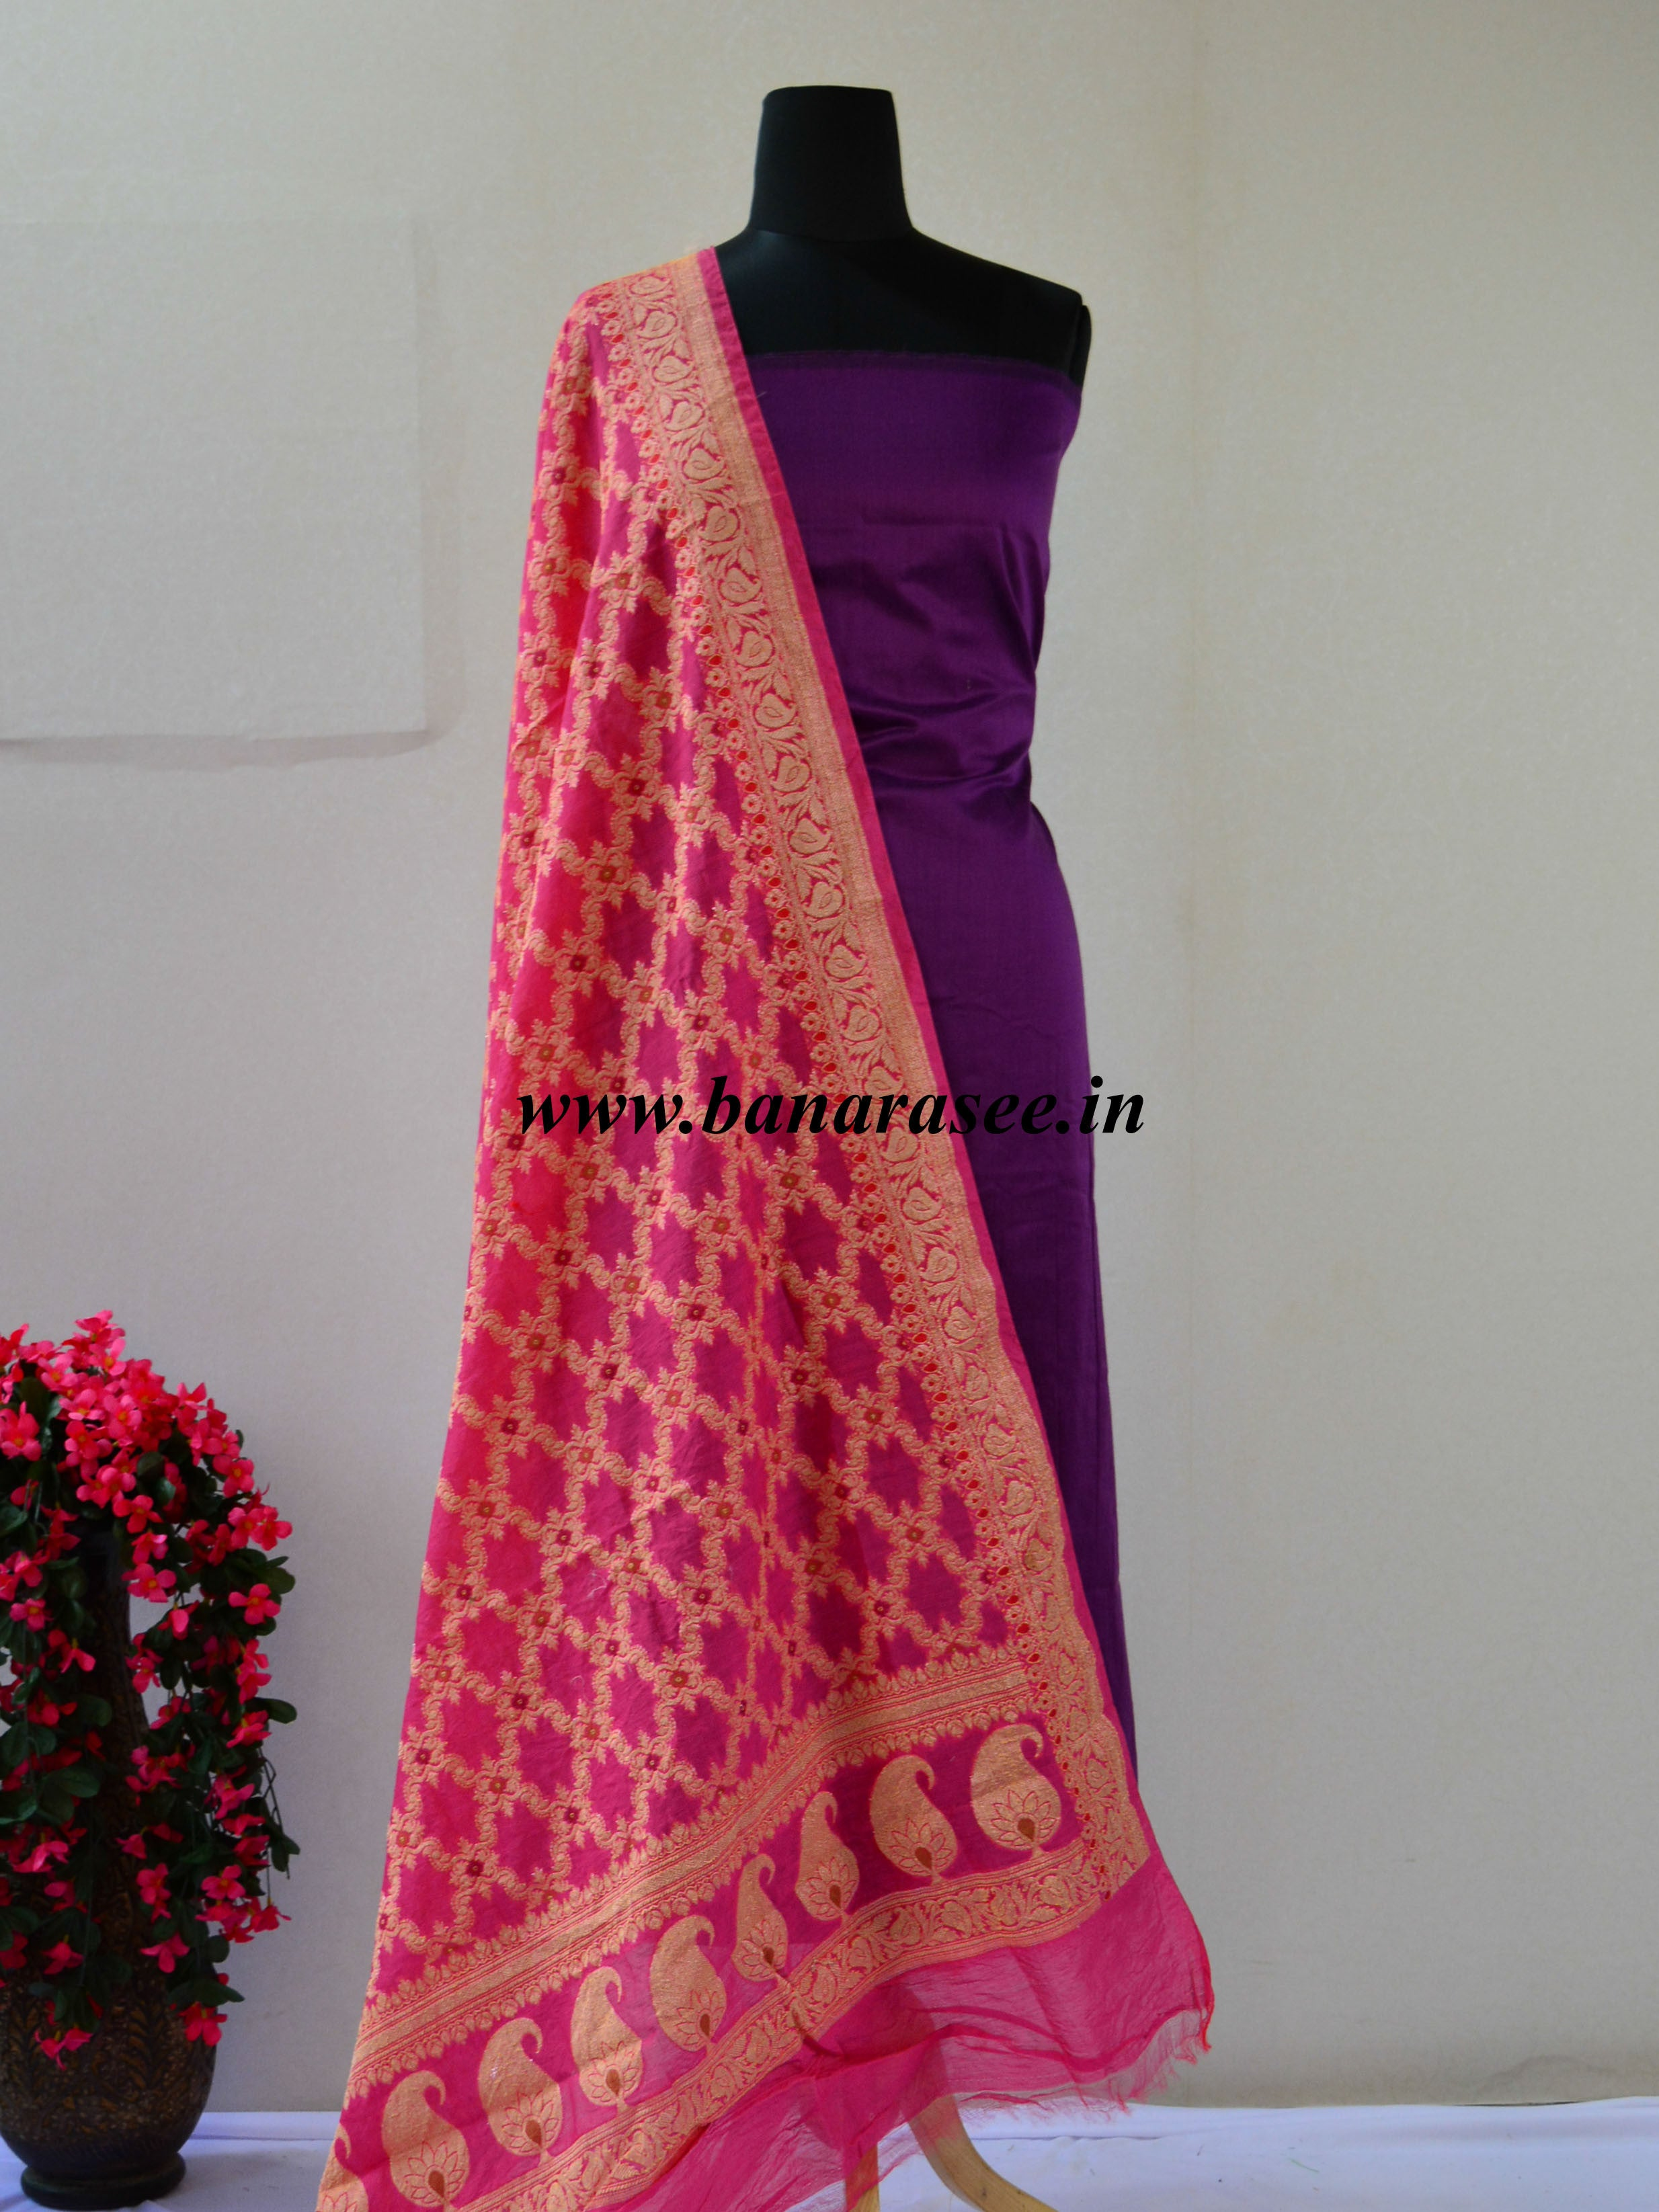 Banarasee Cotton Silk Plain Salwar Kameez Fabric With Pink Zari Jaal D